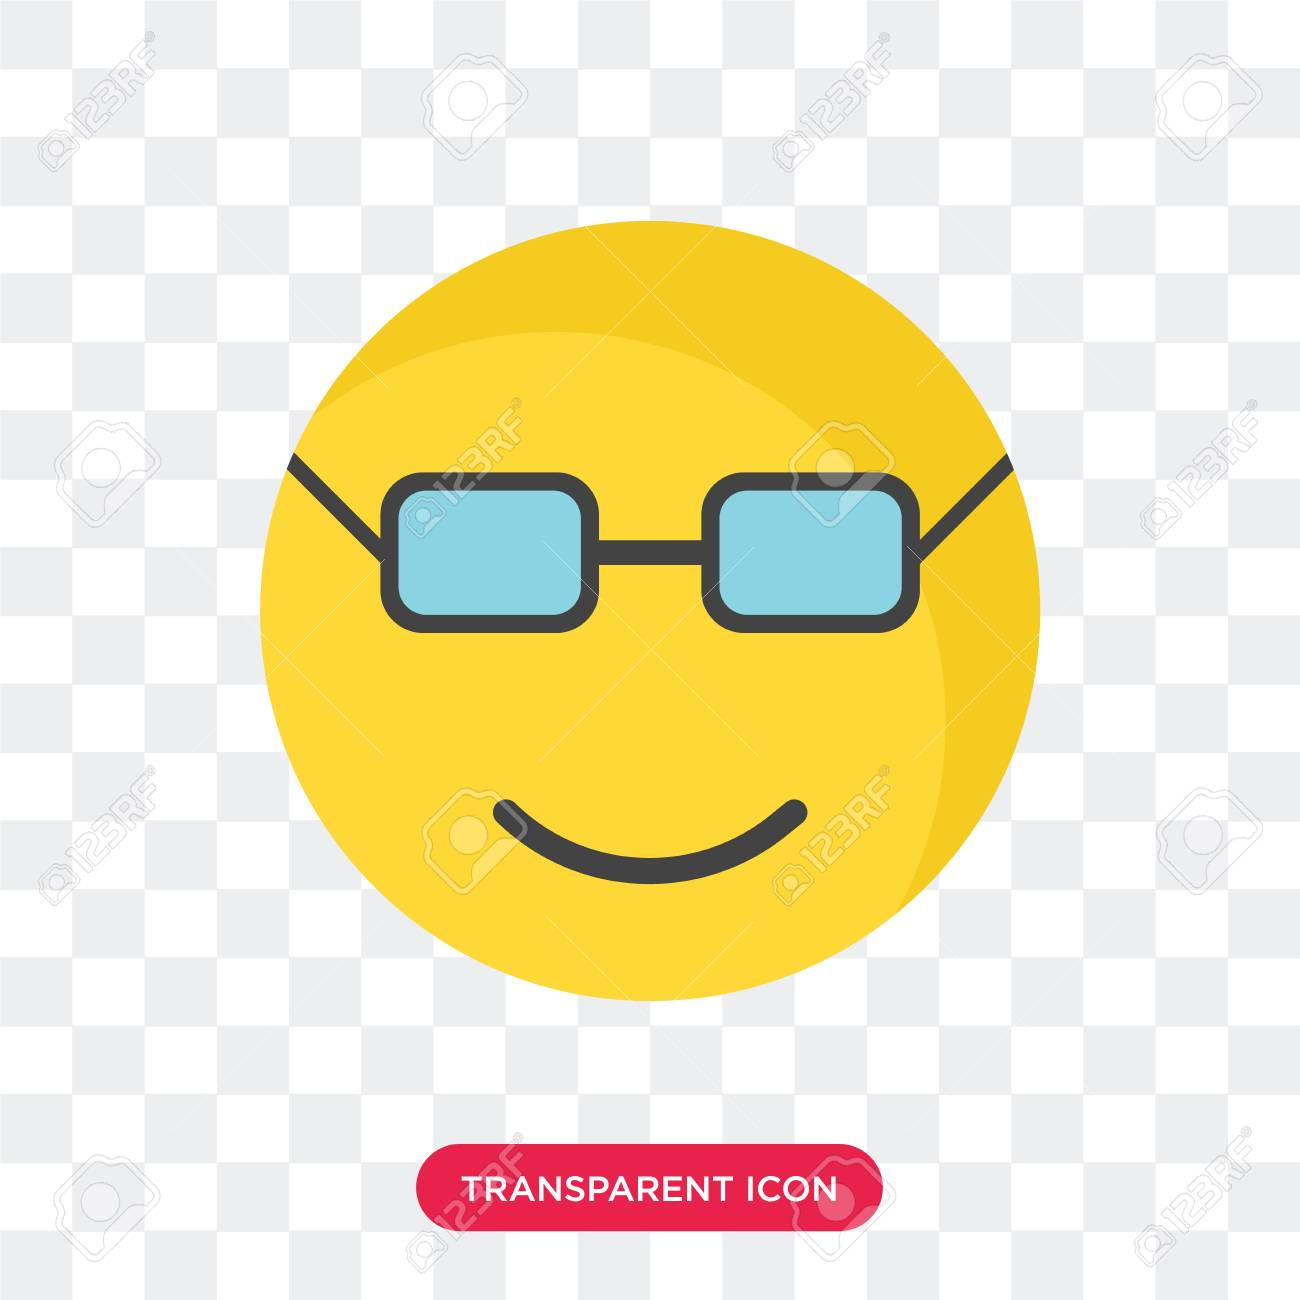 ac2f7b694af Nerd smile vector icon isolated on transparent background nerd smile logo  concept stock vector jpg 1300x1300